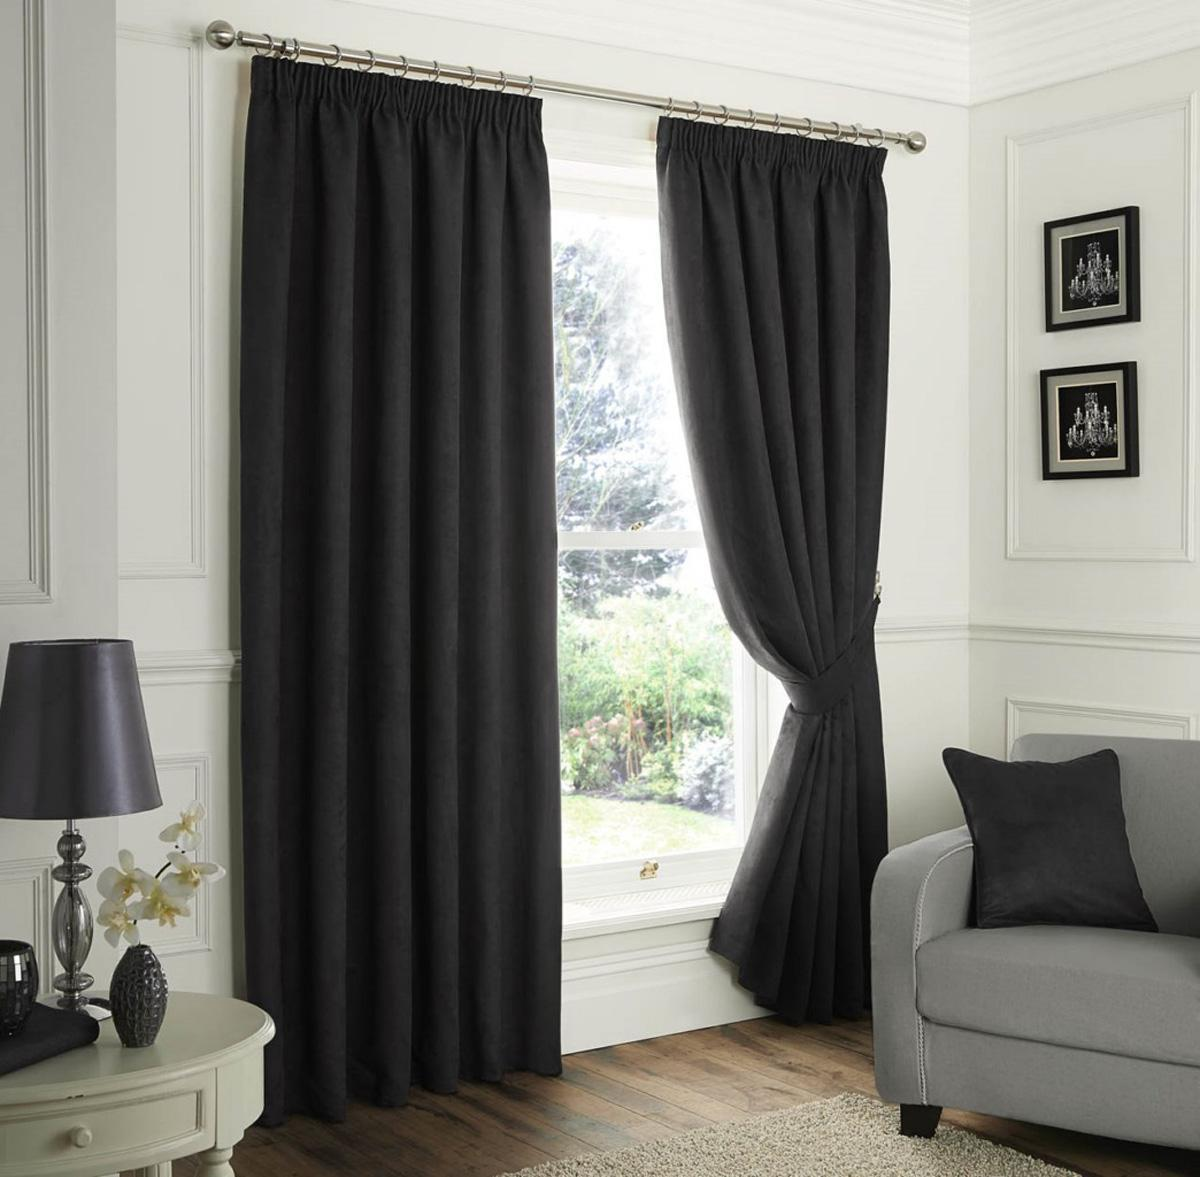 J Rosenthal Ready Made Curtains Faux Suede Ready Made Lined Curtains Black Picture